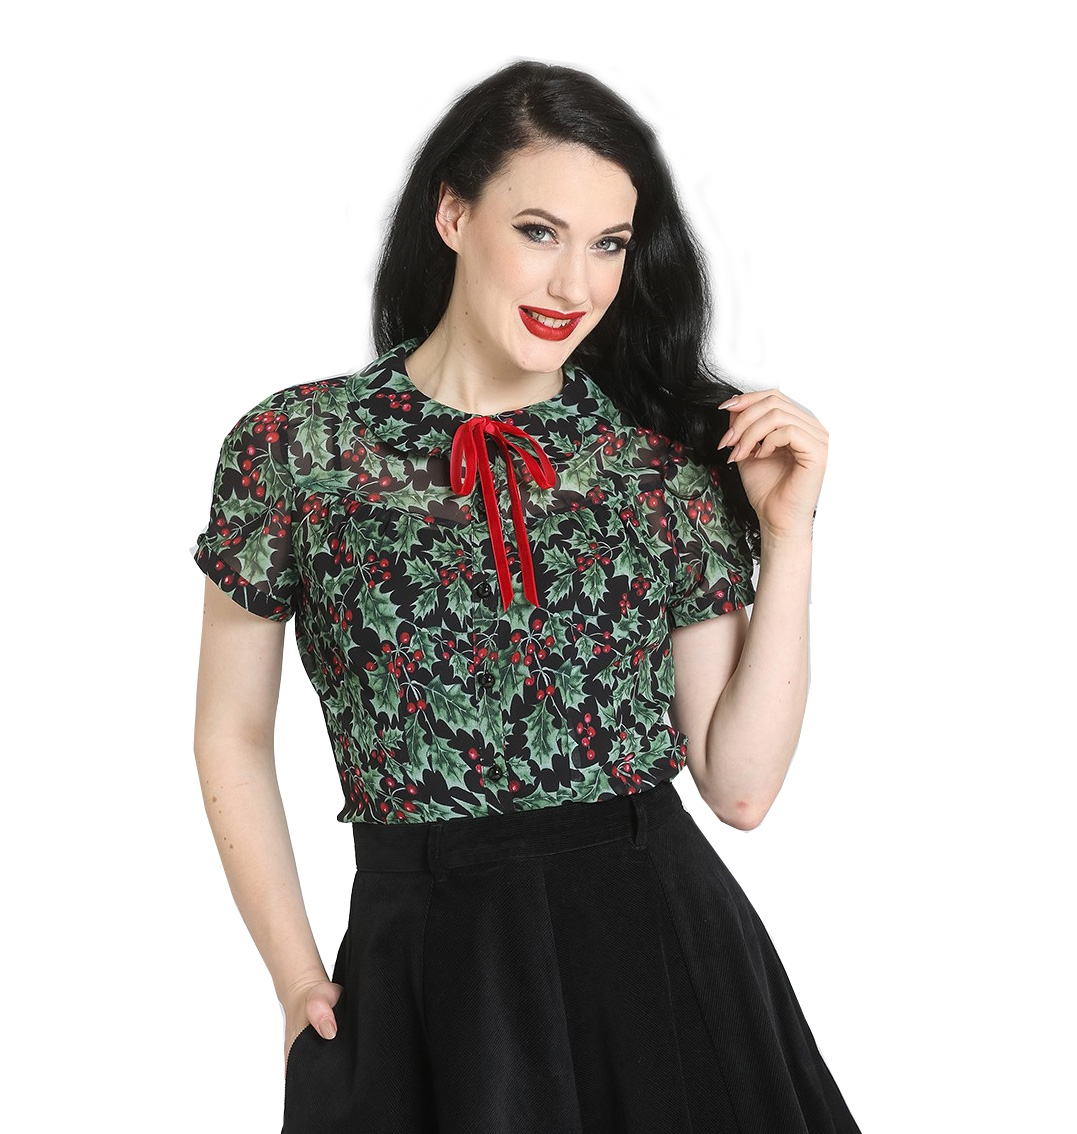 Hell-Bunny-50s-Shirt-Top-Christmas-Festive-HOLLY-Berry-Blouse-Black-All-Sizes thumbnail 3